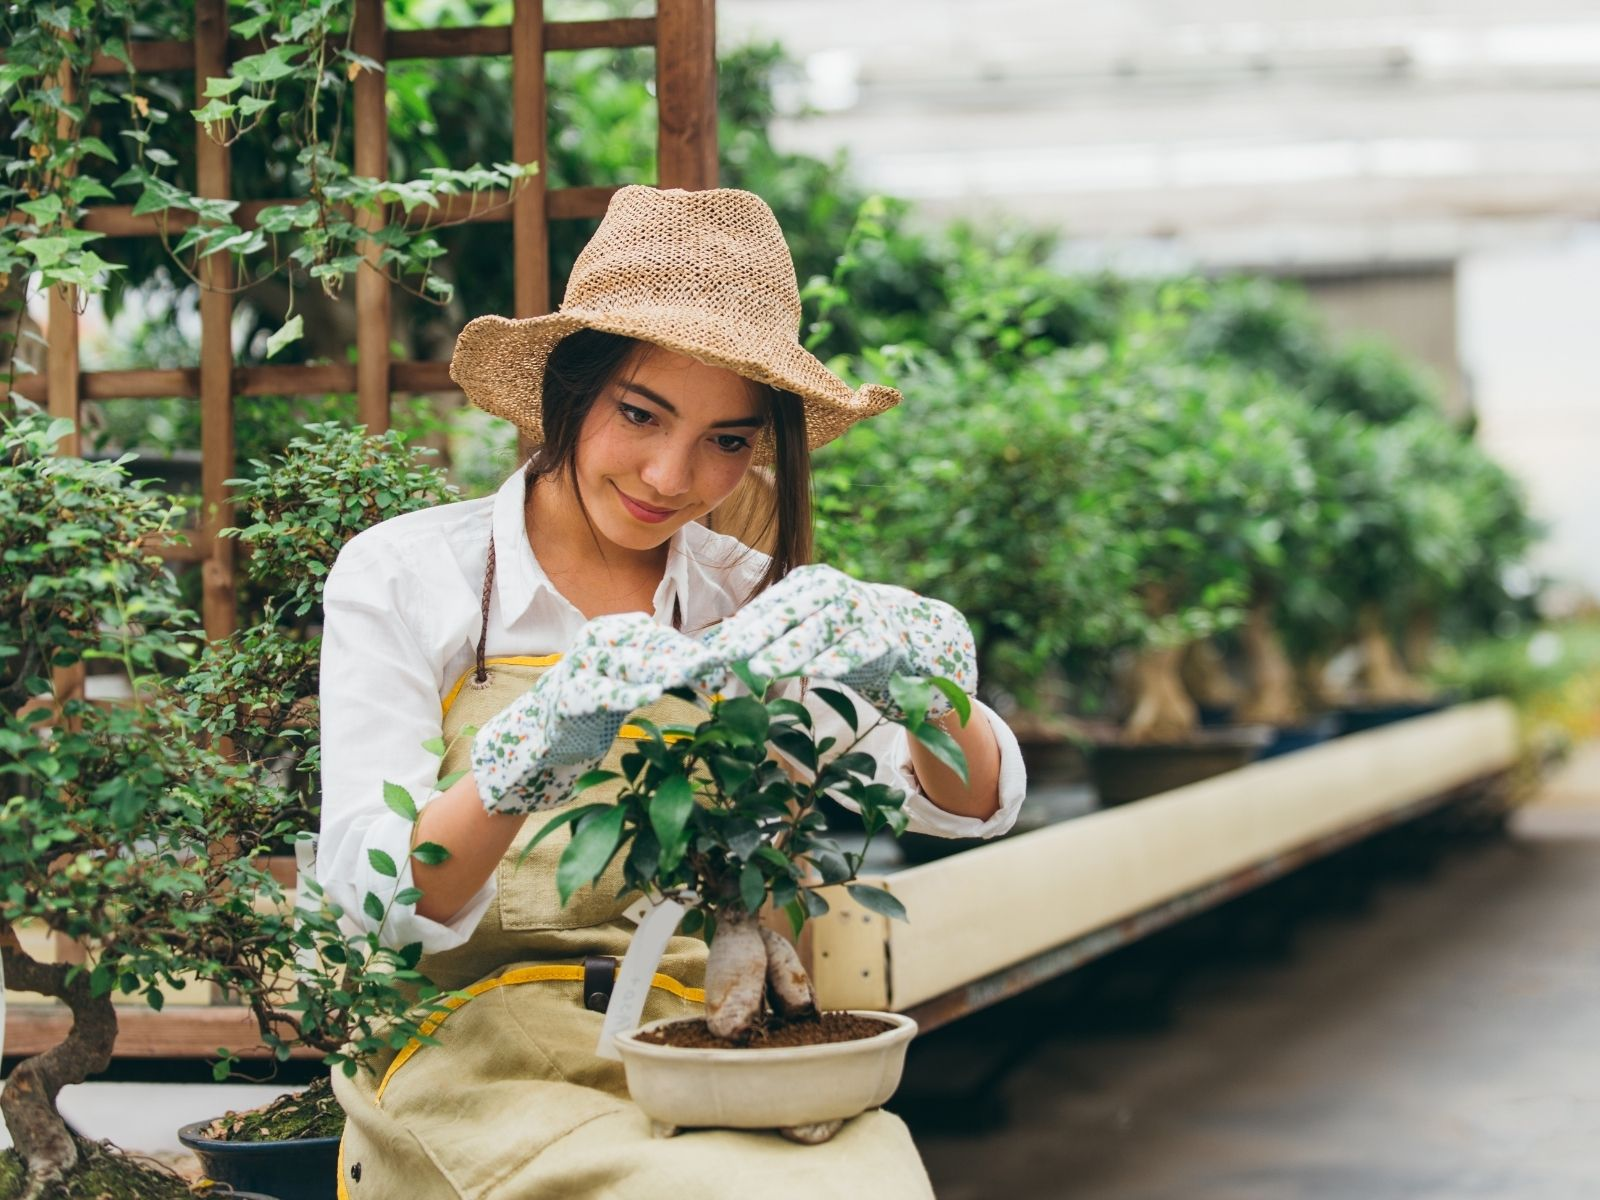 Gardening is fun, here are some tips